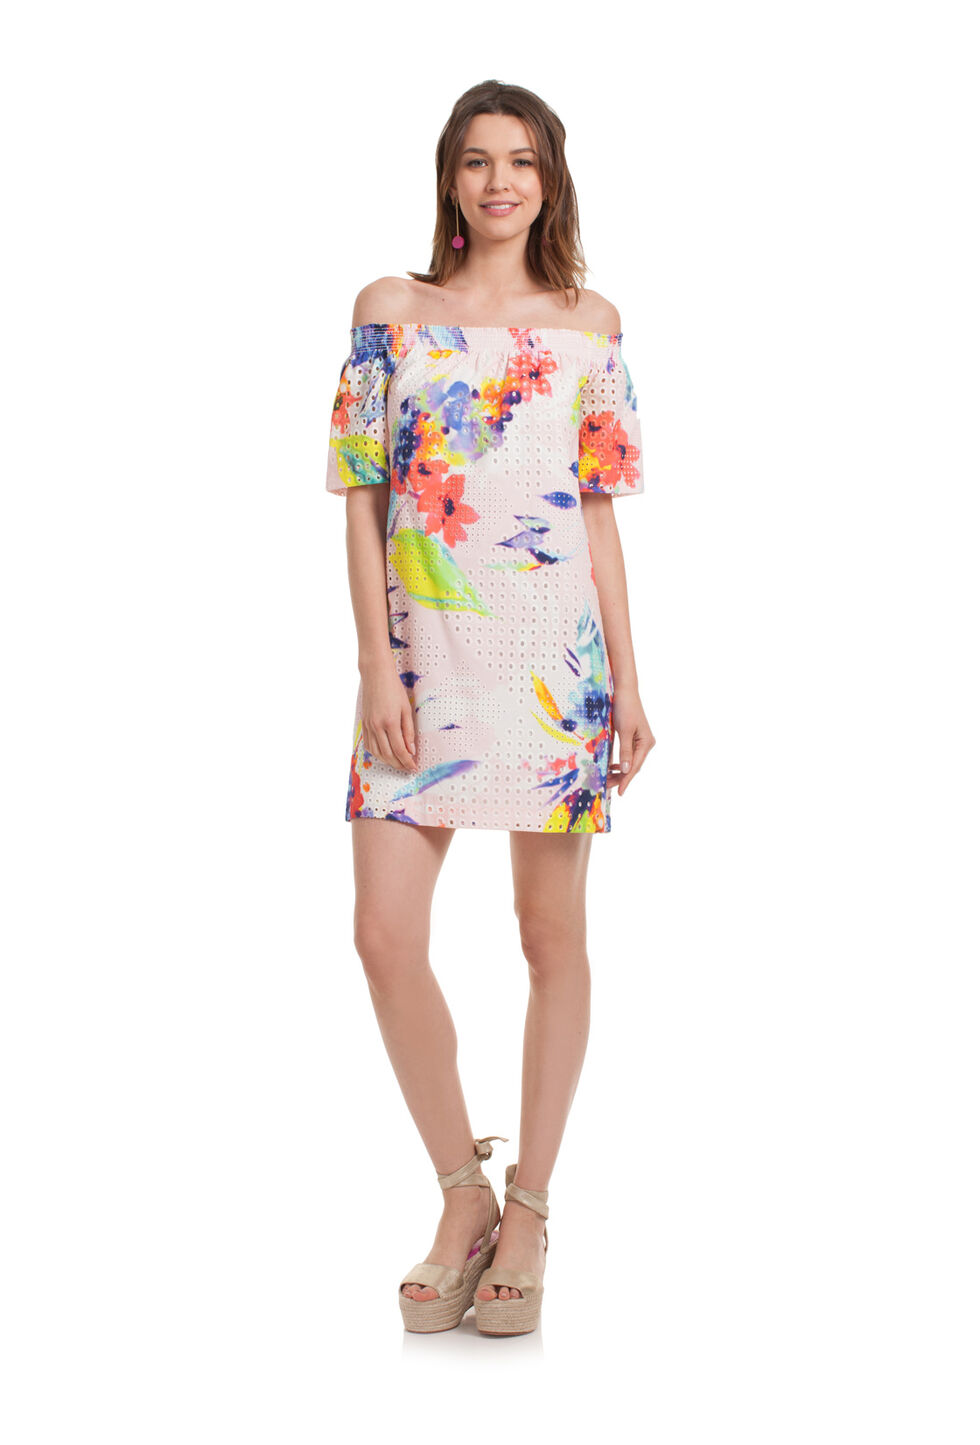 Trina Turk Savilla Dress - Multicolor - Size Fit Guide